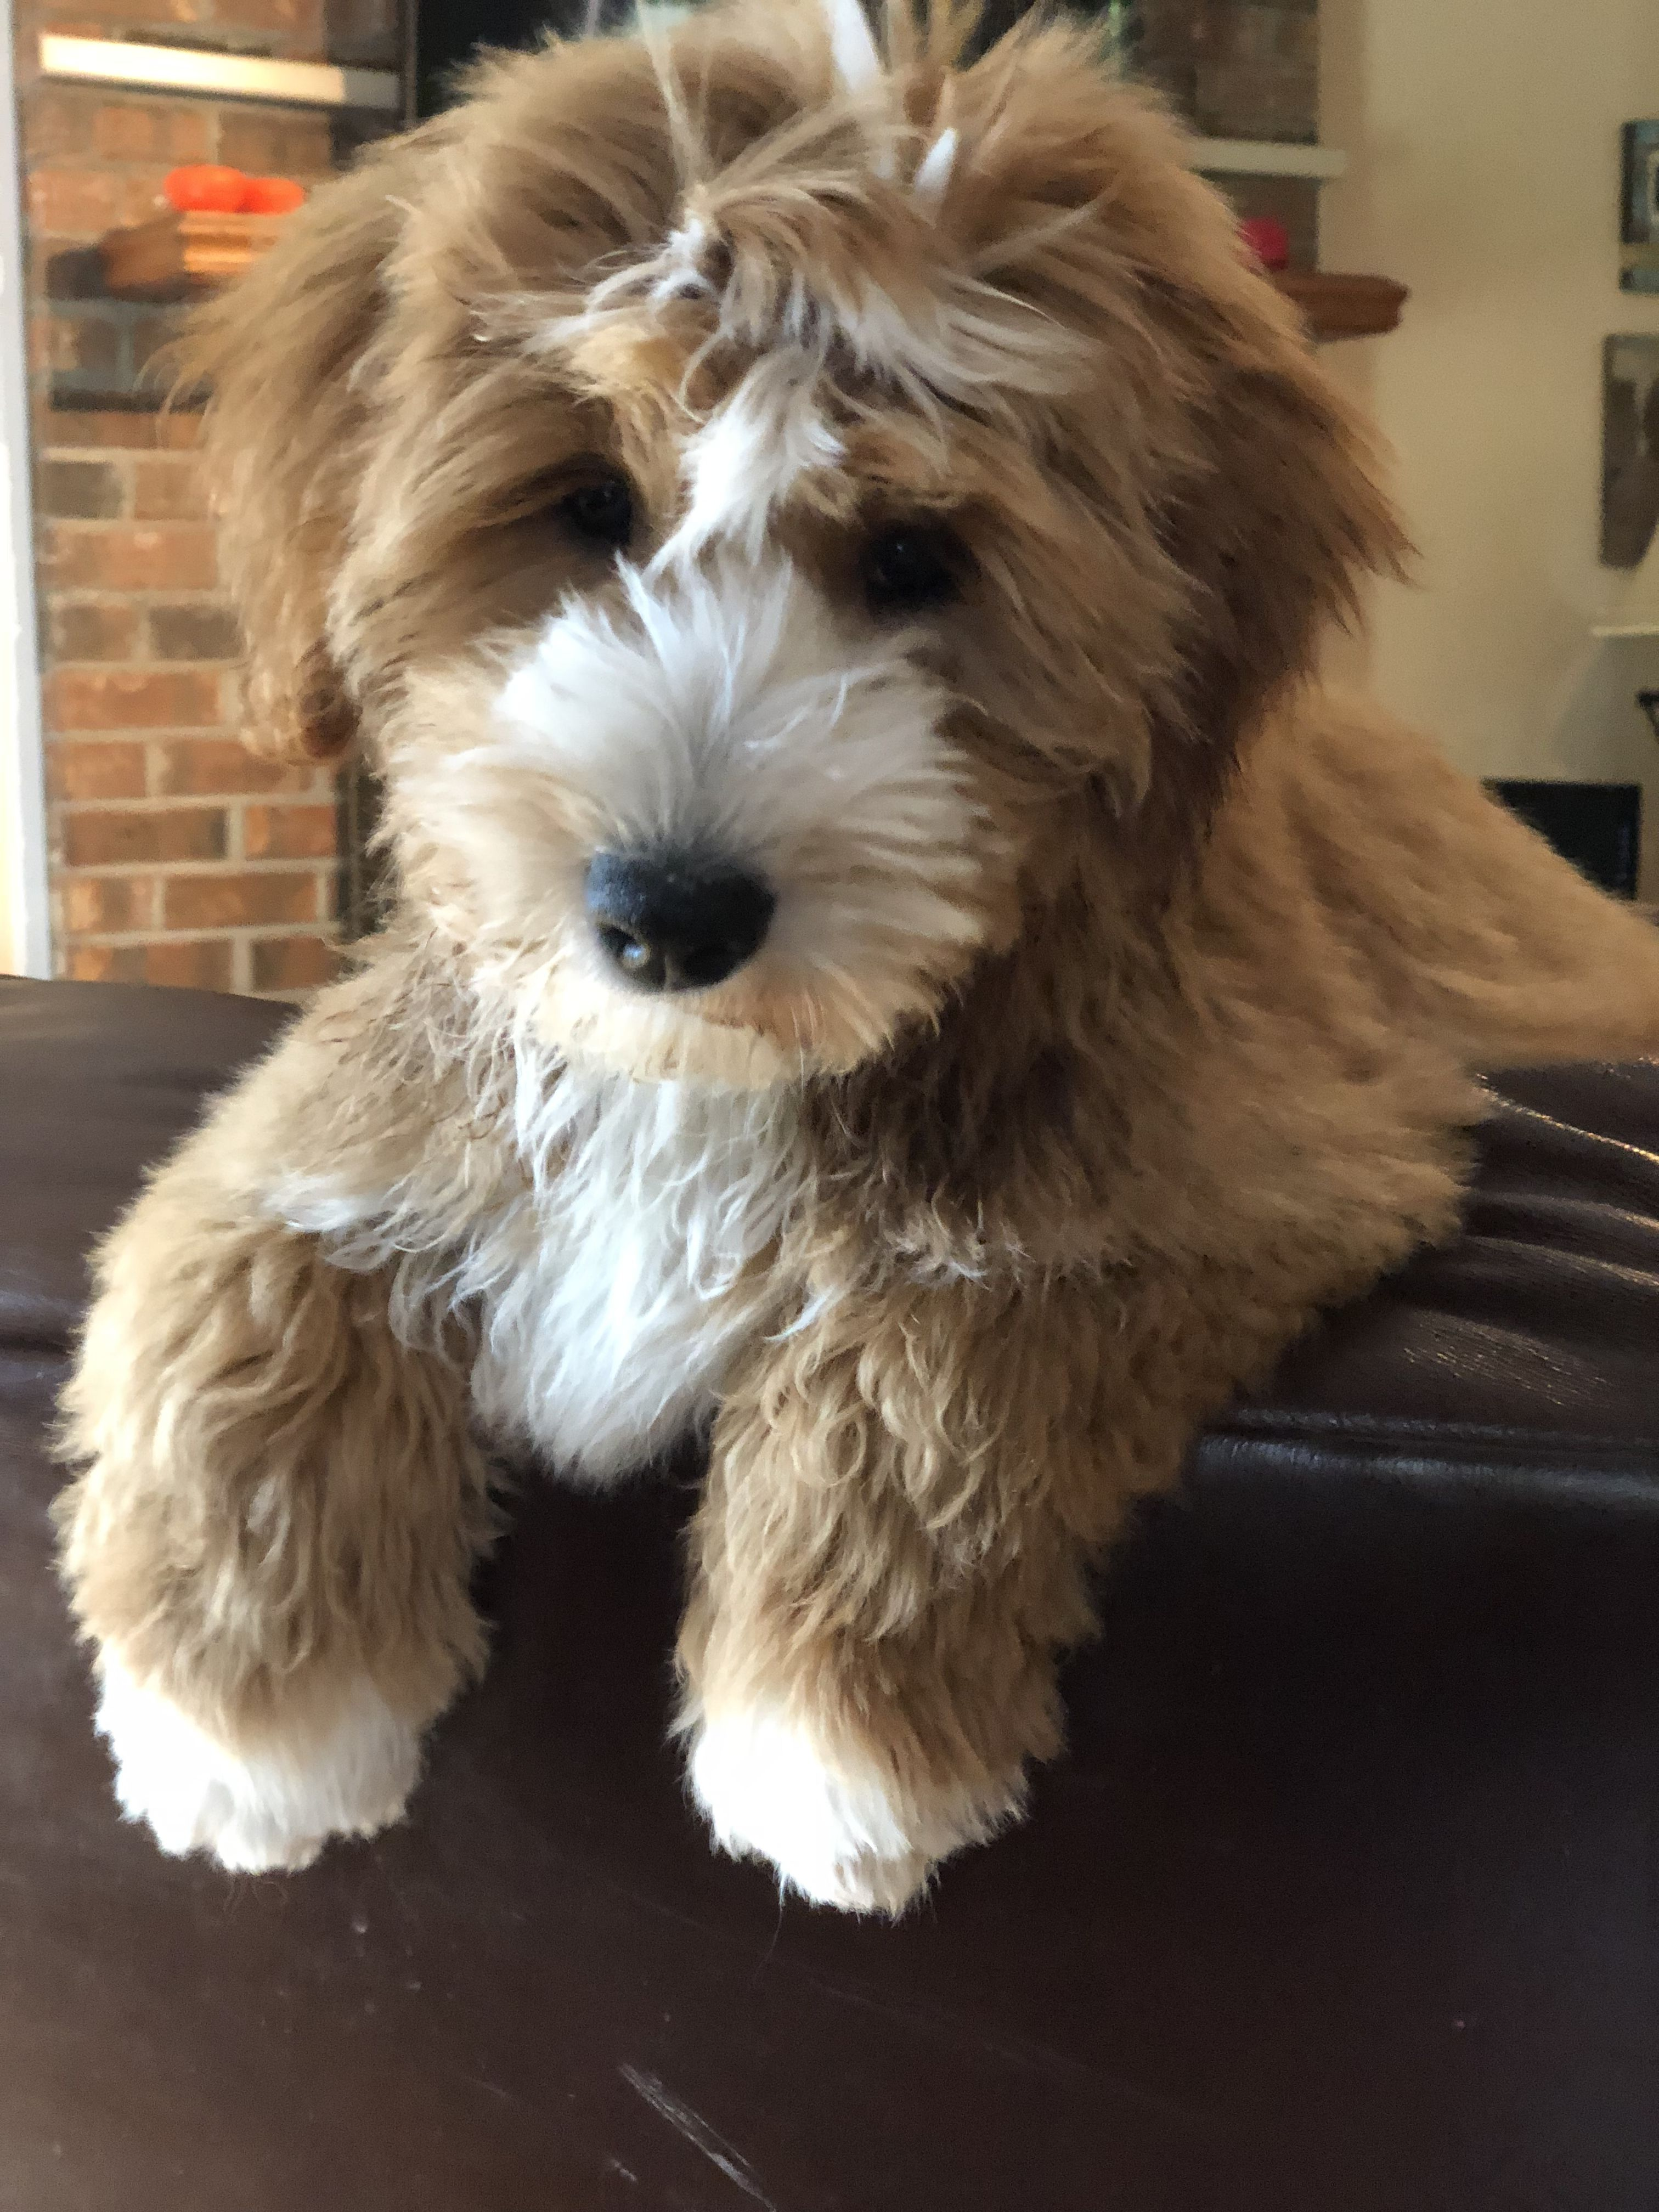 Red White Tuxedo Goldendoodle Puppy Candy Doodles Maddi Candydoodles Goldendoodles Com Cuddly Animals Beautiful Dogs Pet Care Dogs